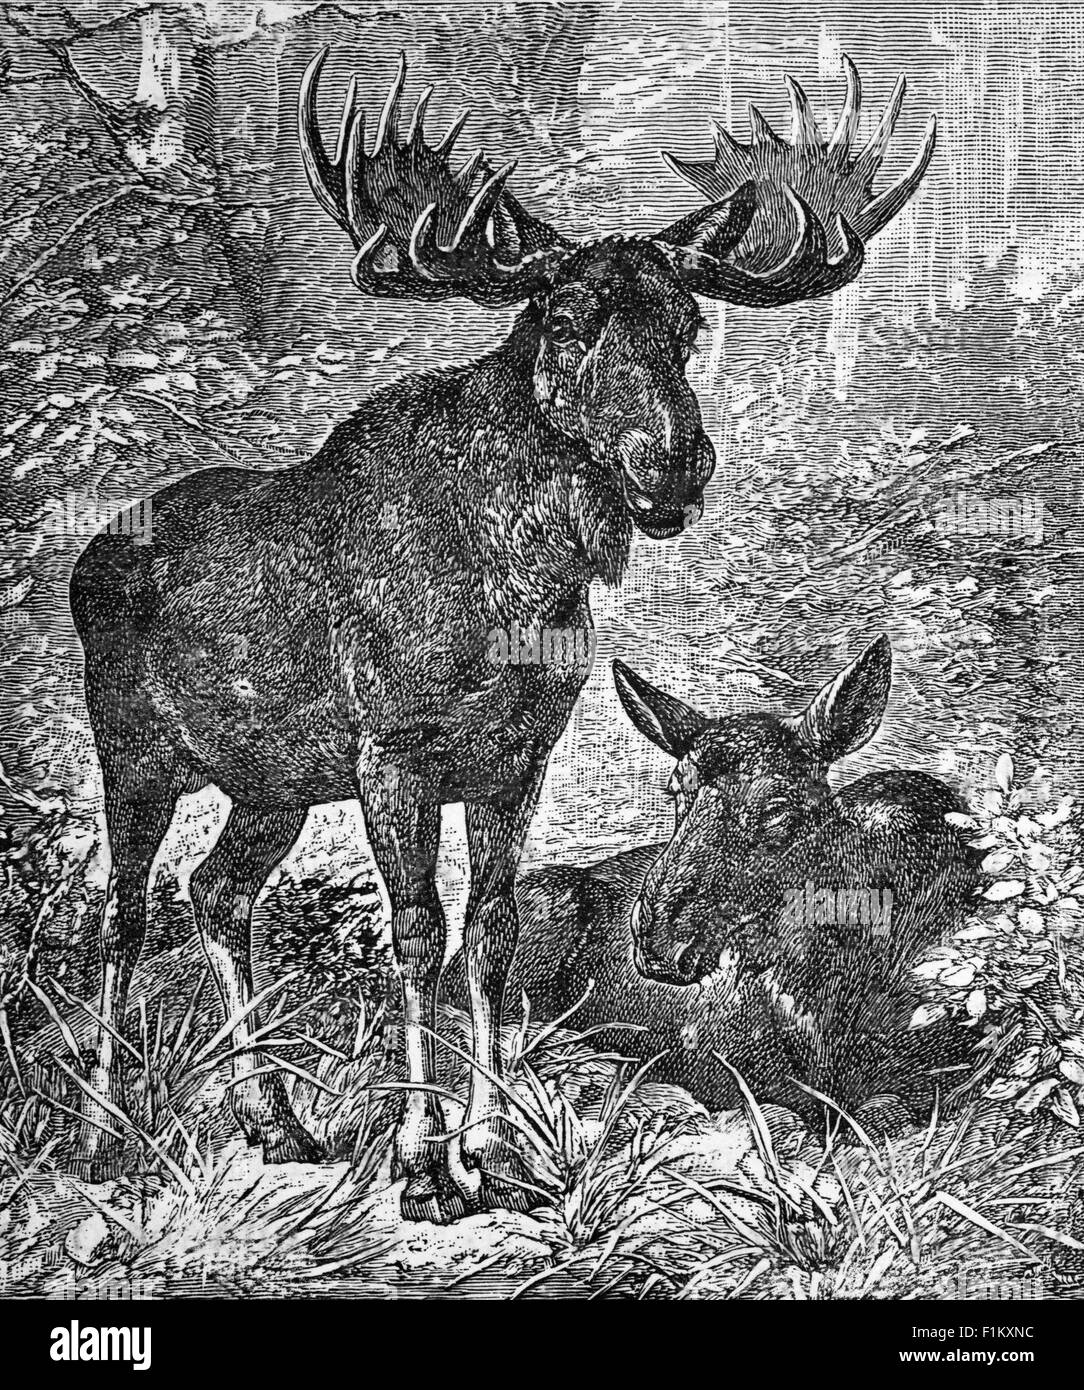 An Elk or Moose in Northern Canada - Stock Image